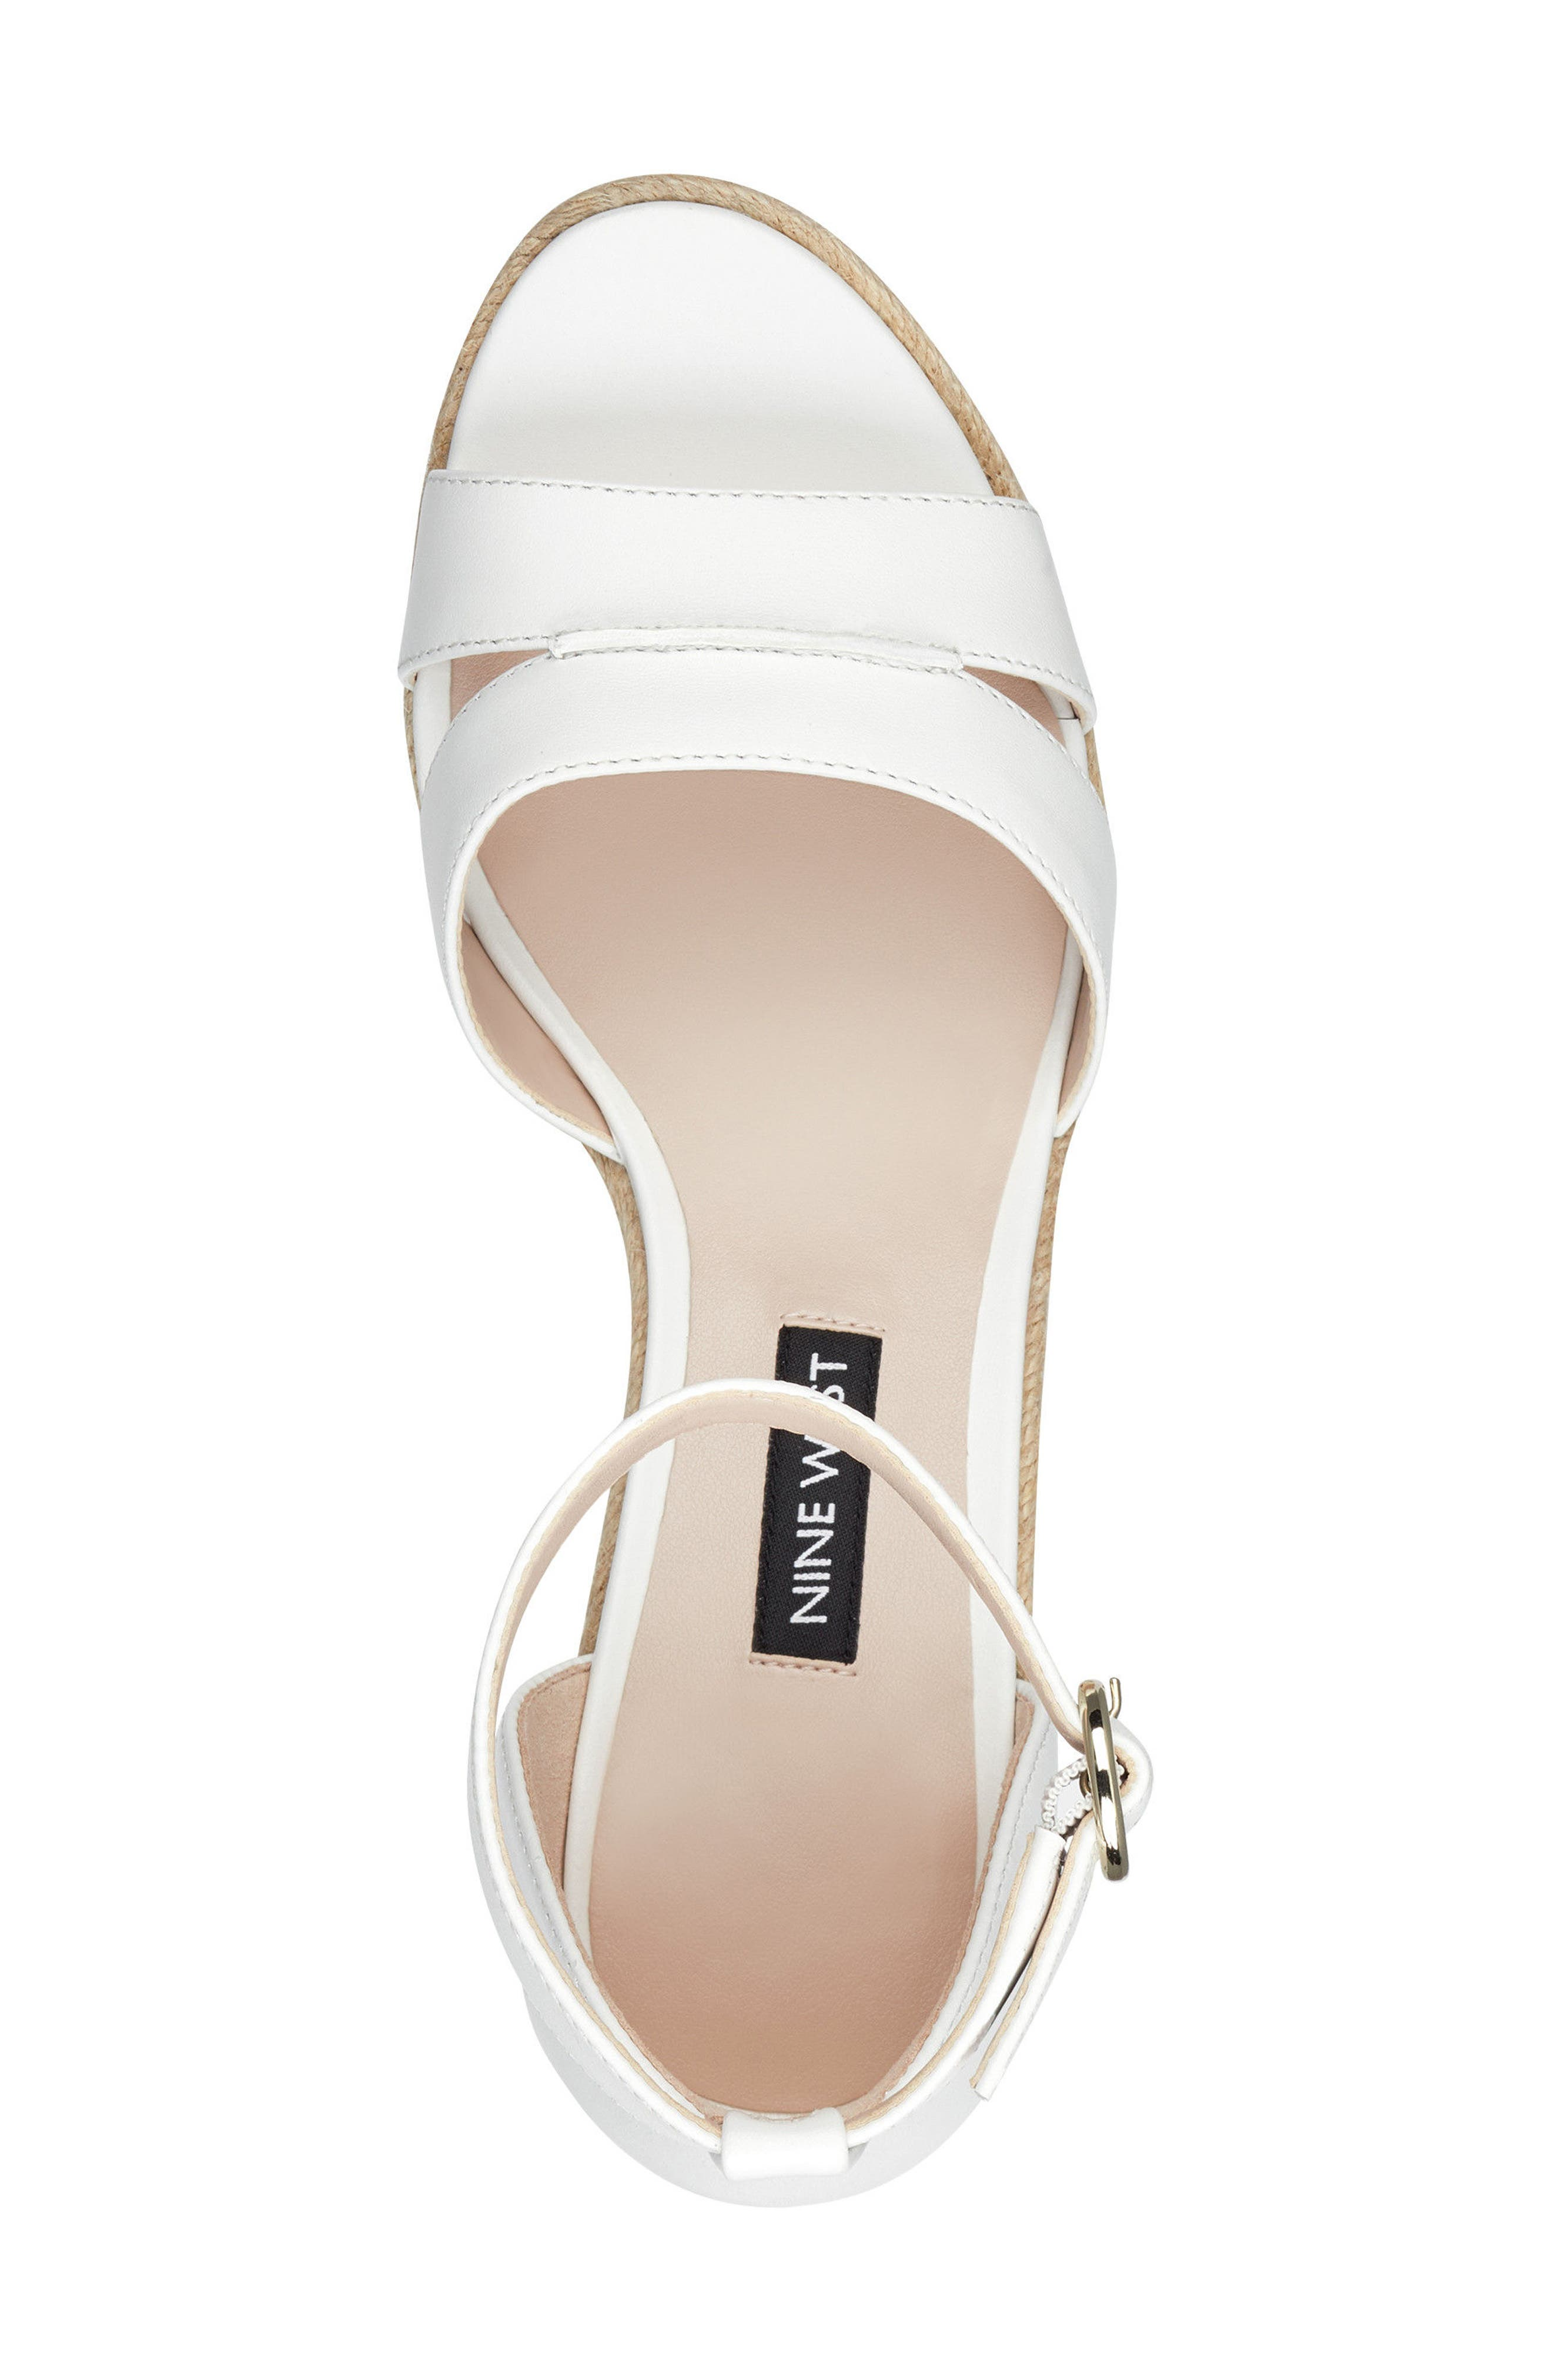 Jeranna Espadrille Wedge Sandal,                             Alternate thumbnail 5, color,                             WHITE LEATHER